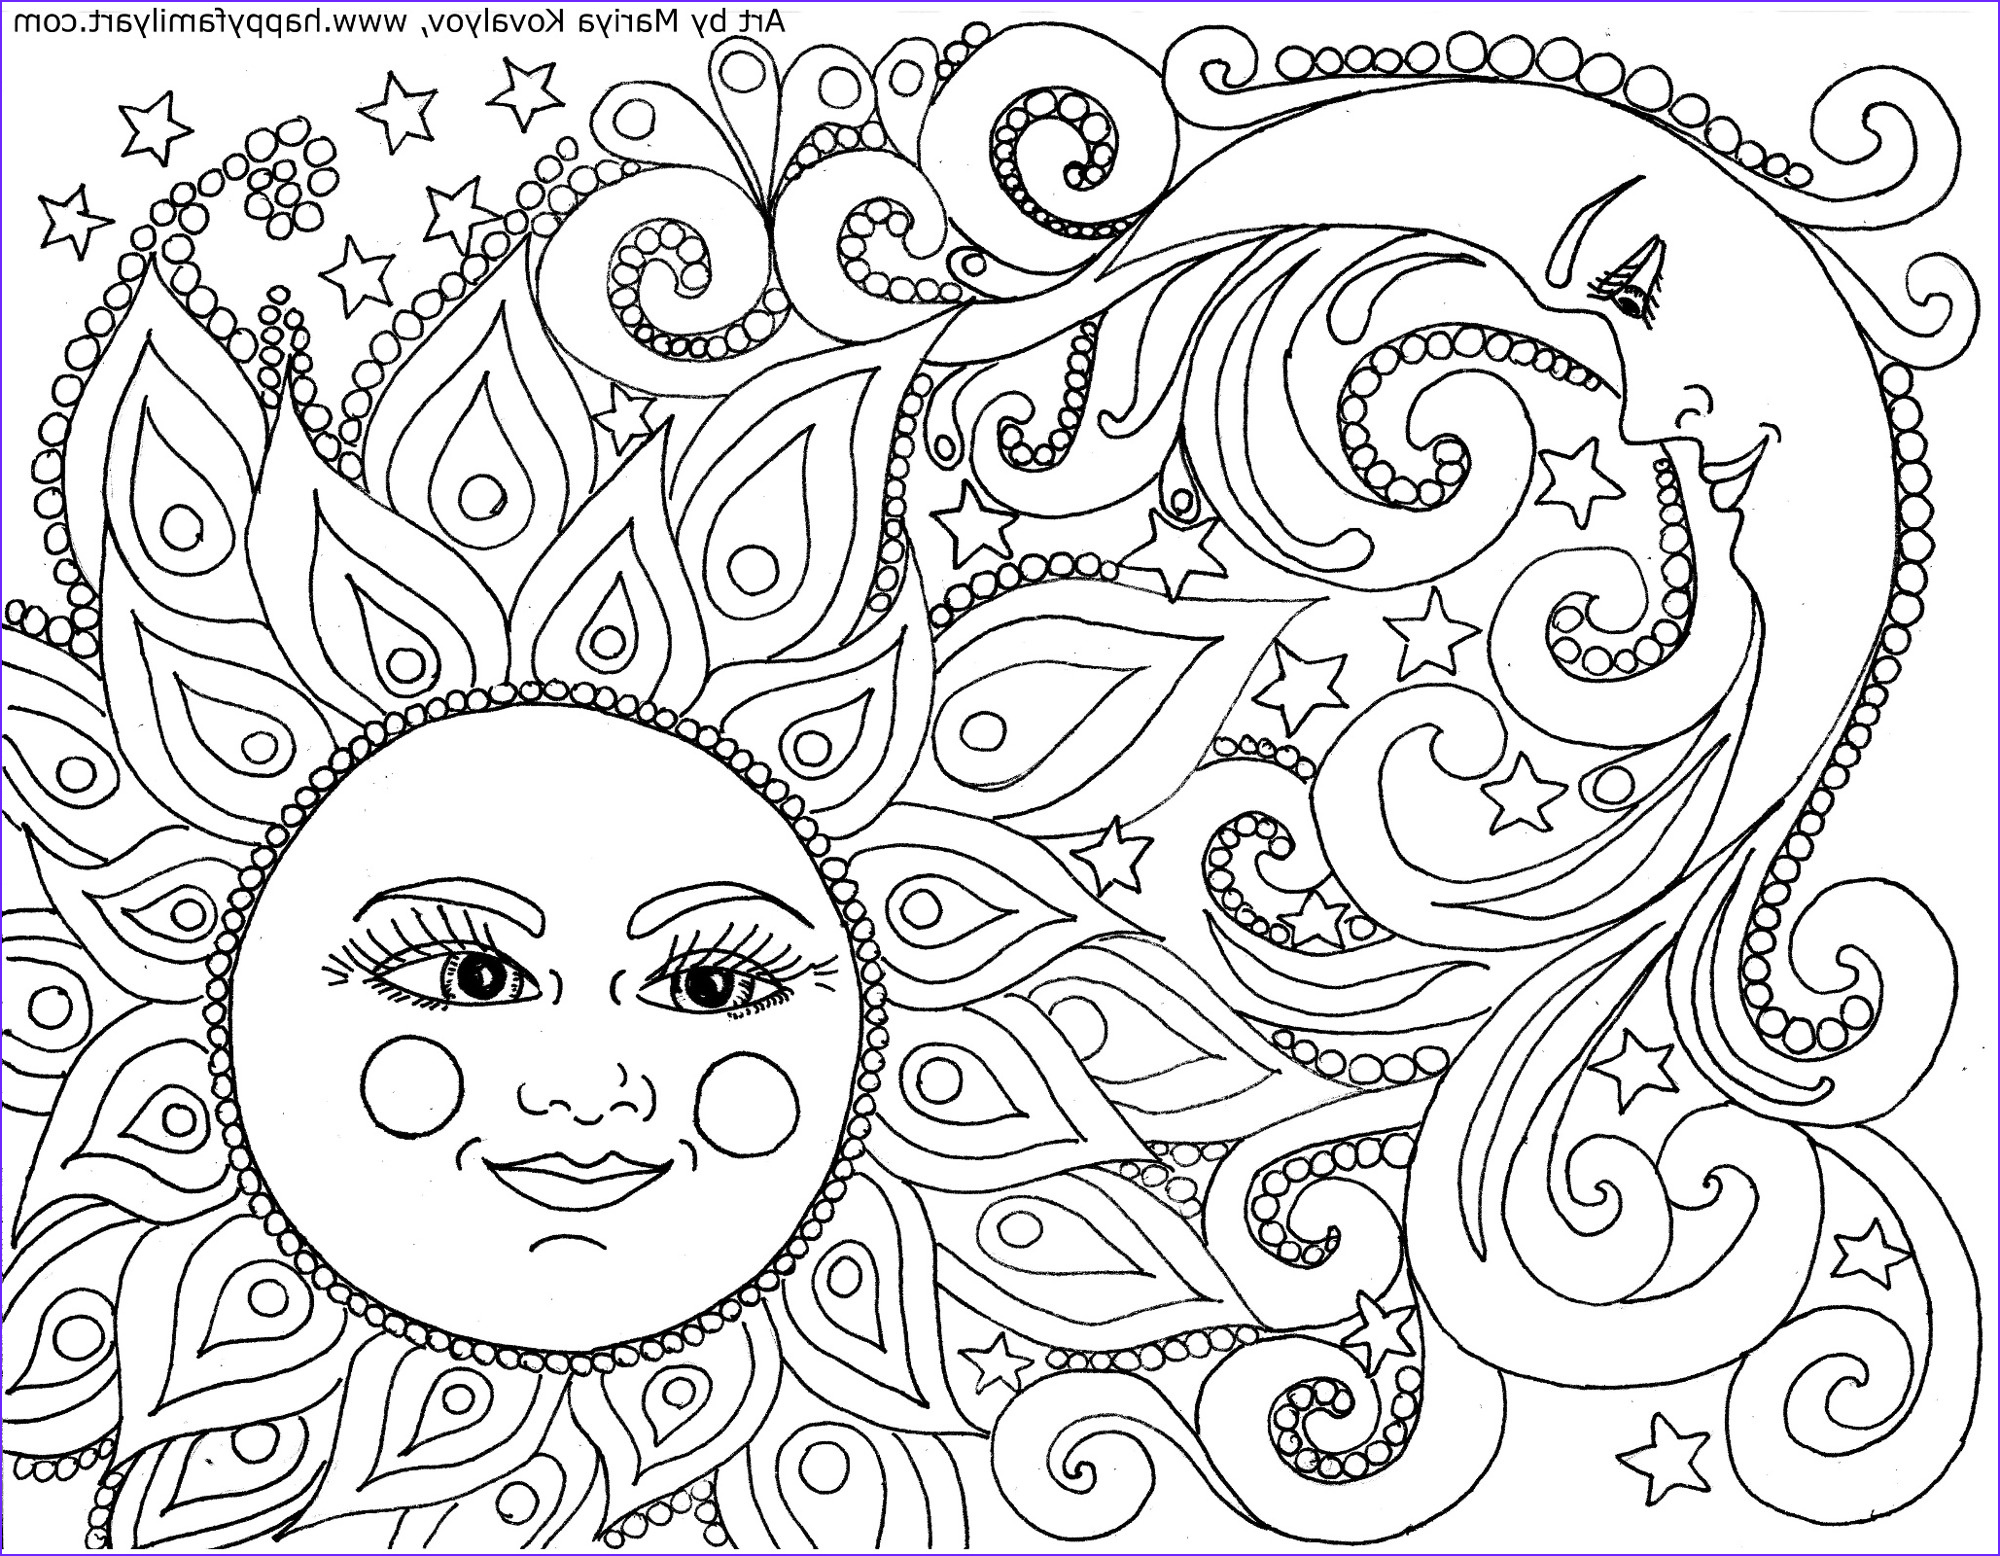 Coloring Pages Family Elegant Collection Happy Family Art original and Fun Coloring Pages